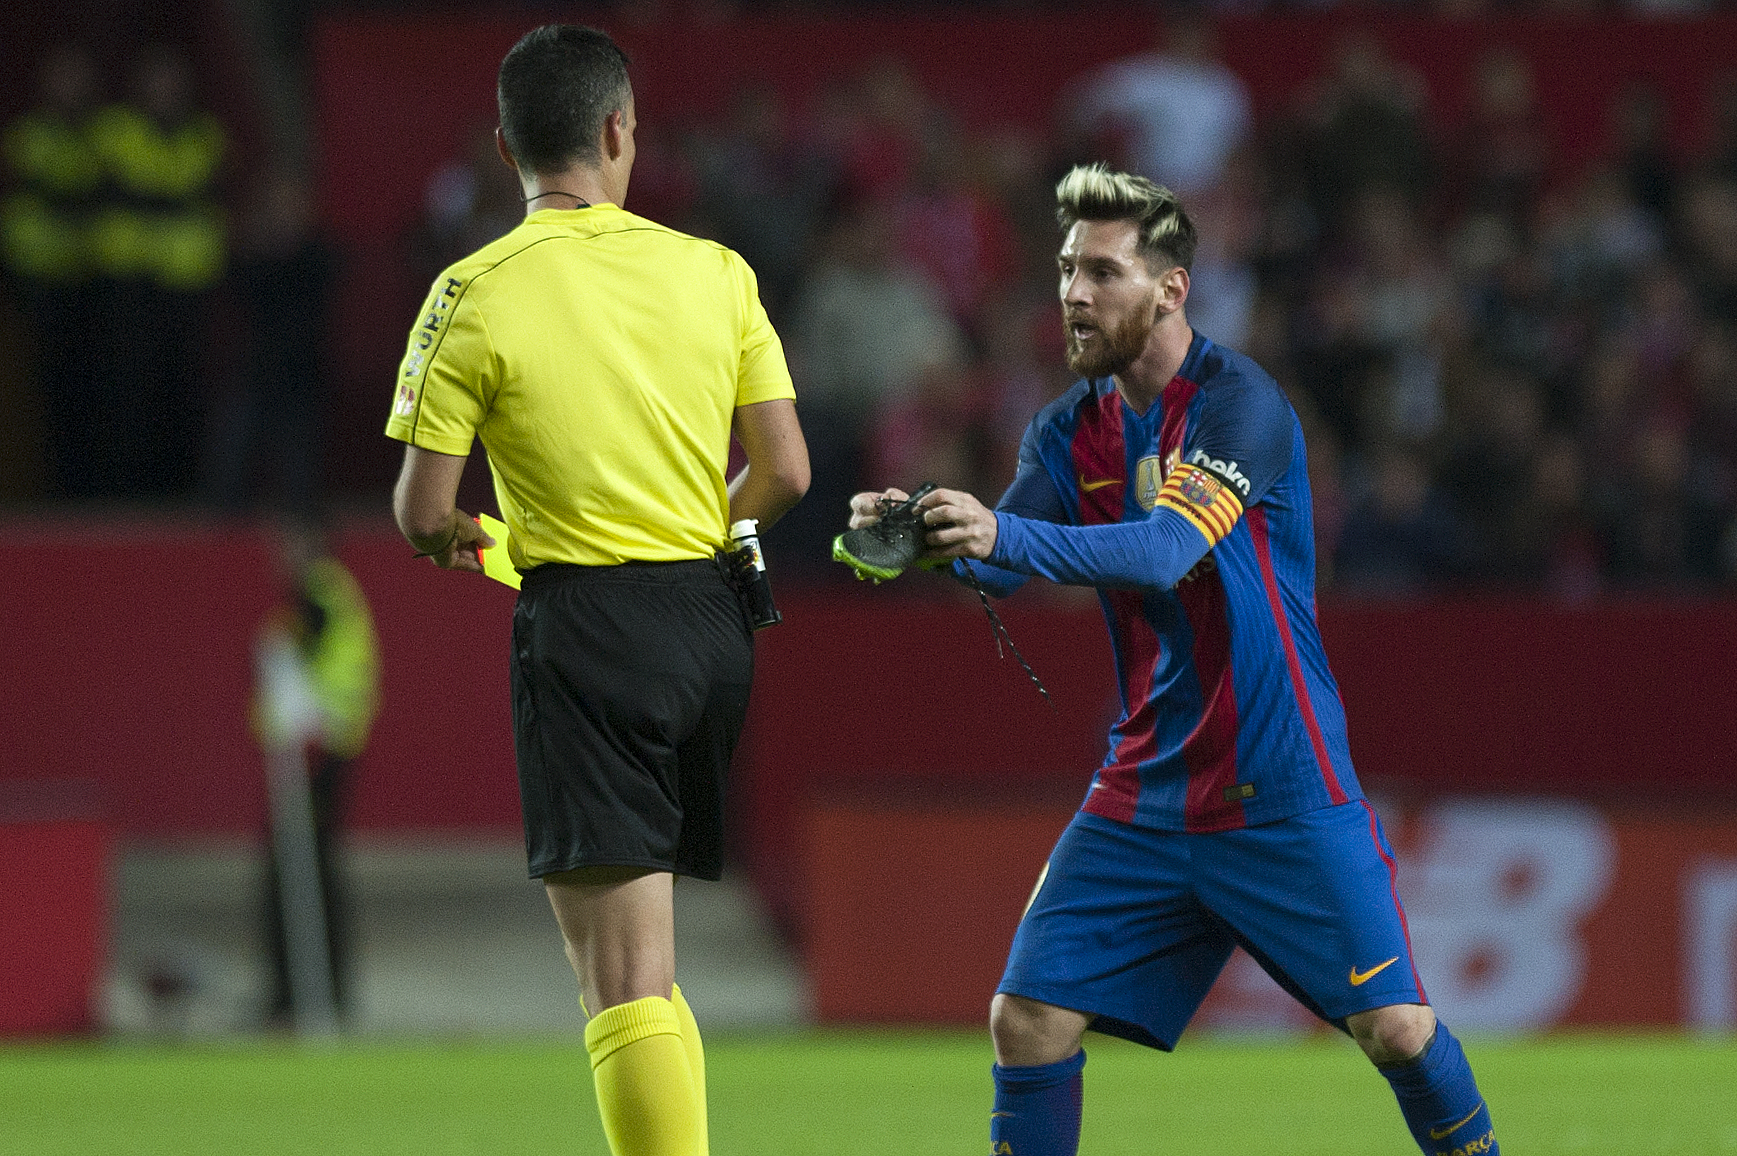 Lionel Messi get yellow card